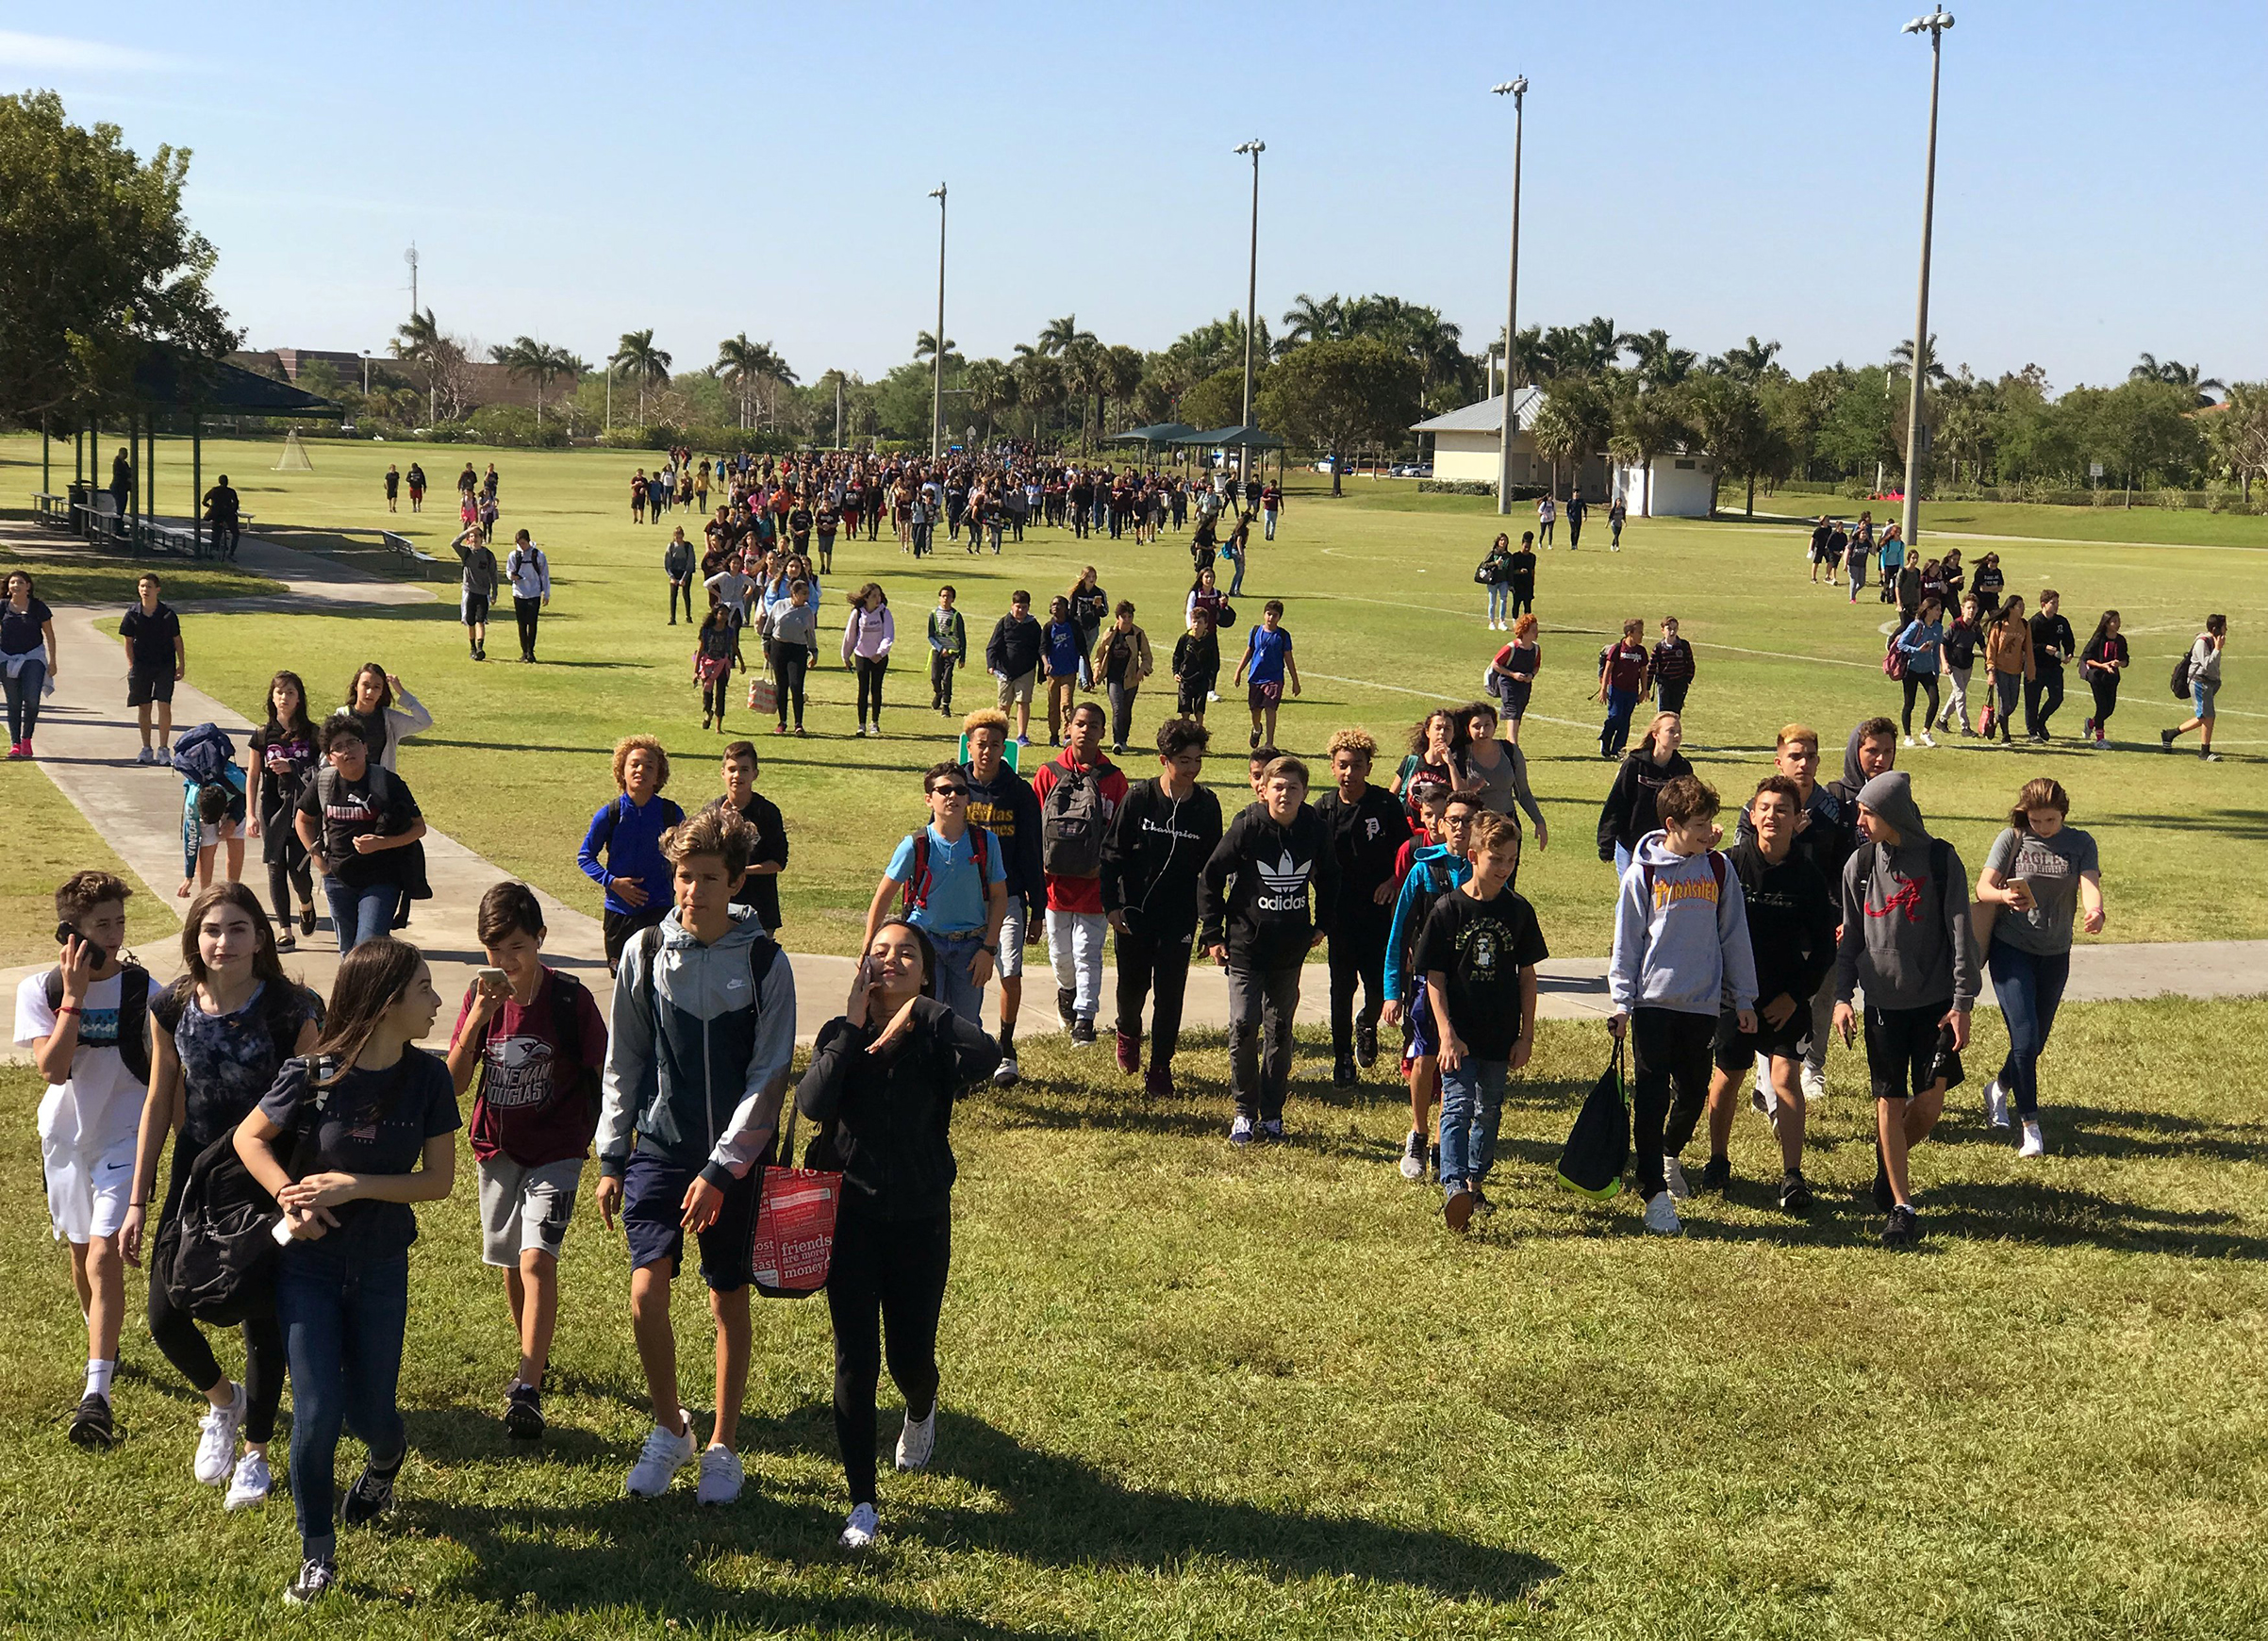 Students from West Lakes Middle School and Marjory Stoneman Douglas High School walkout during National School Walkout to protest gun violence in Parkland, Fla., March 14, 2018.